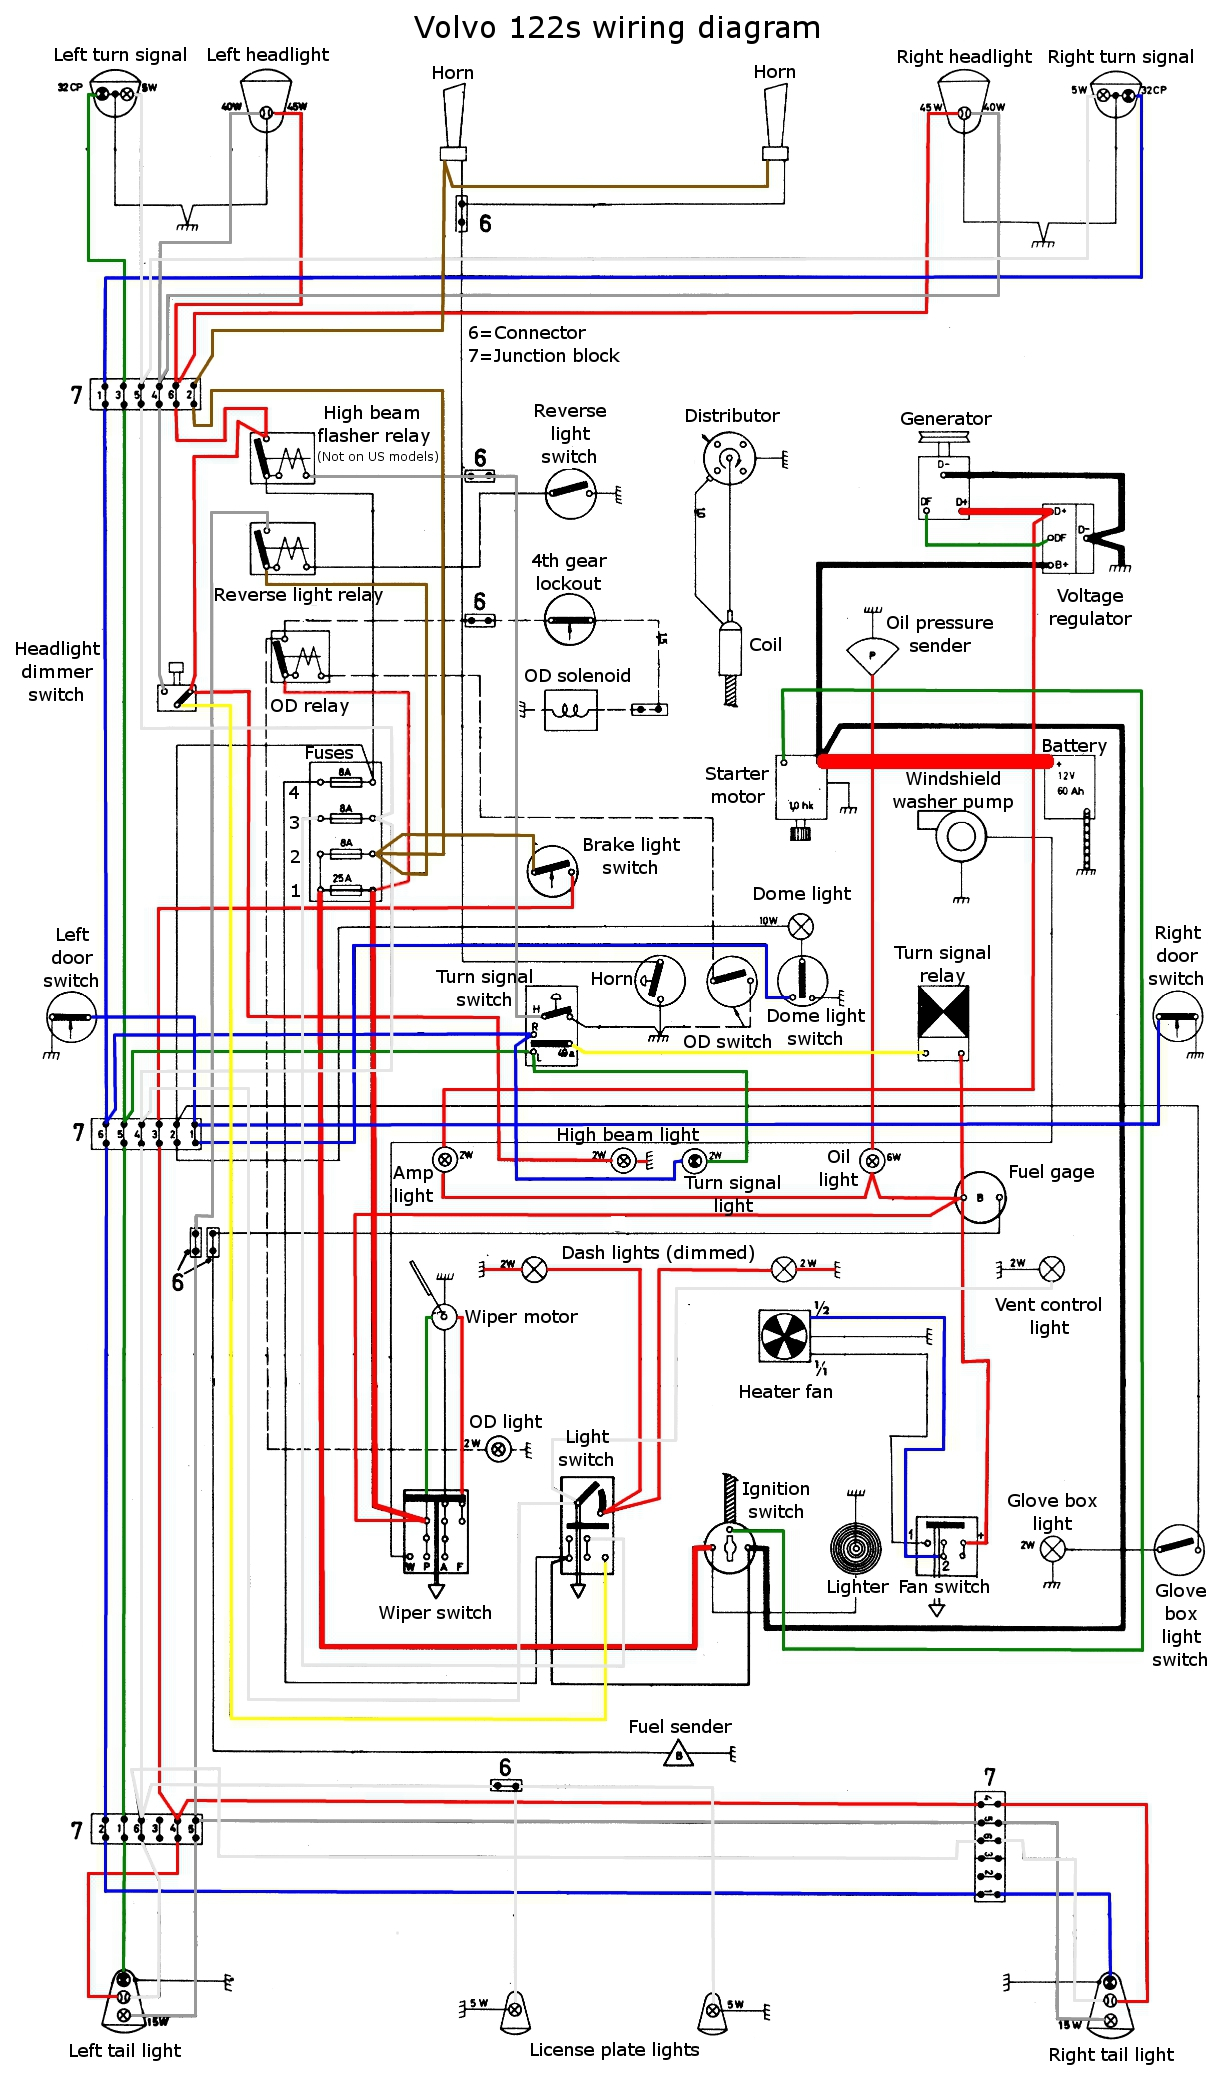 2004 Gem Car Wiring Diagram Free Picture Trusted Diagrams Golf Volvo S60 S80 T6 Engine 2002 2005 E2